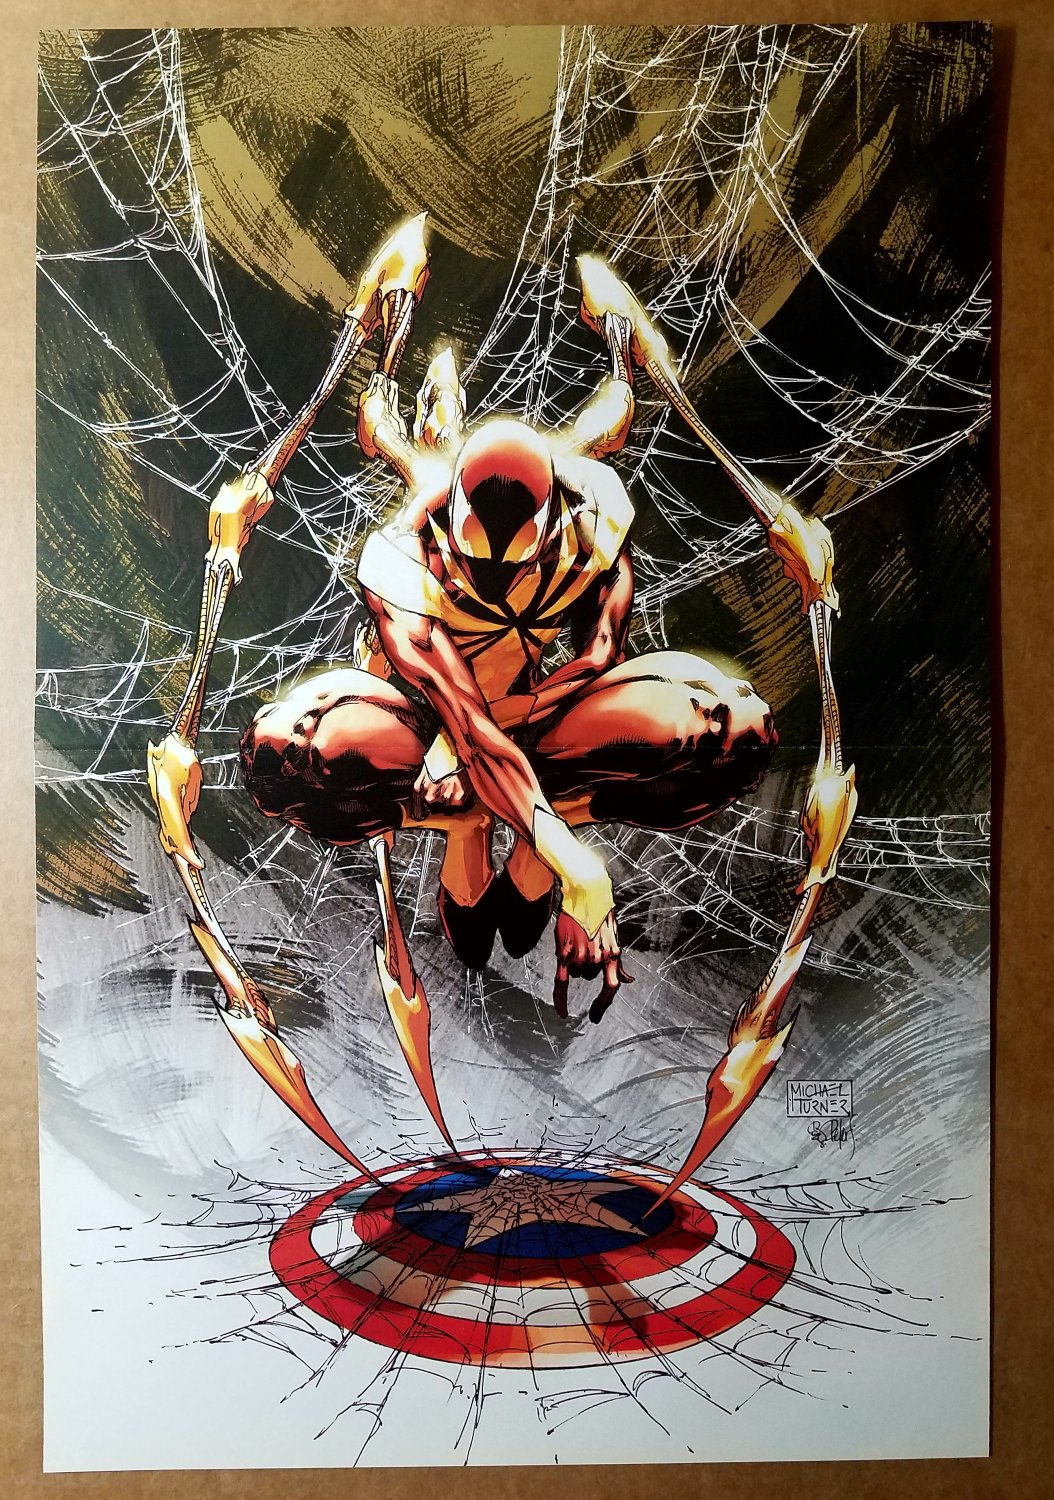 Civil War Spider-Man Captain America Marvel Comics Poster by Michael Turner